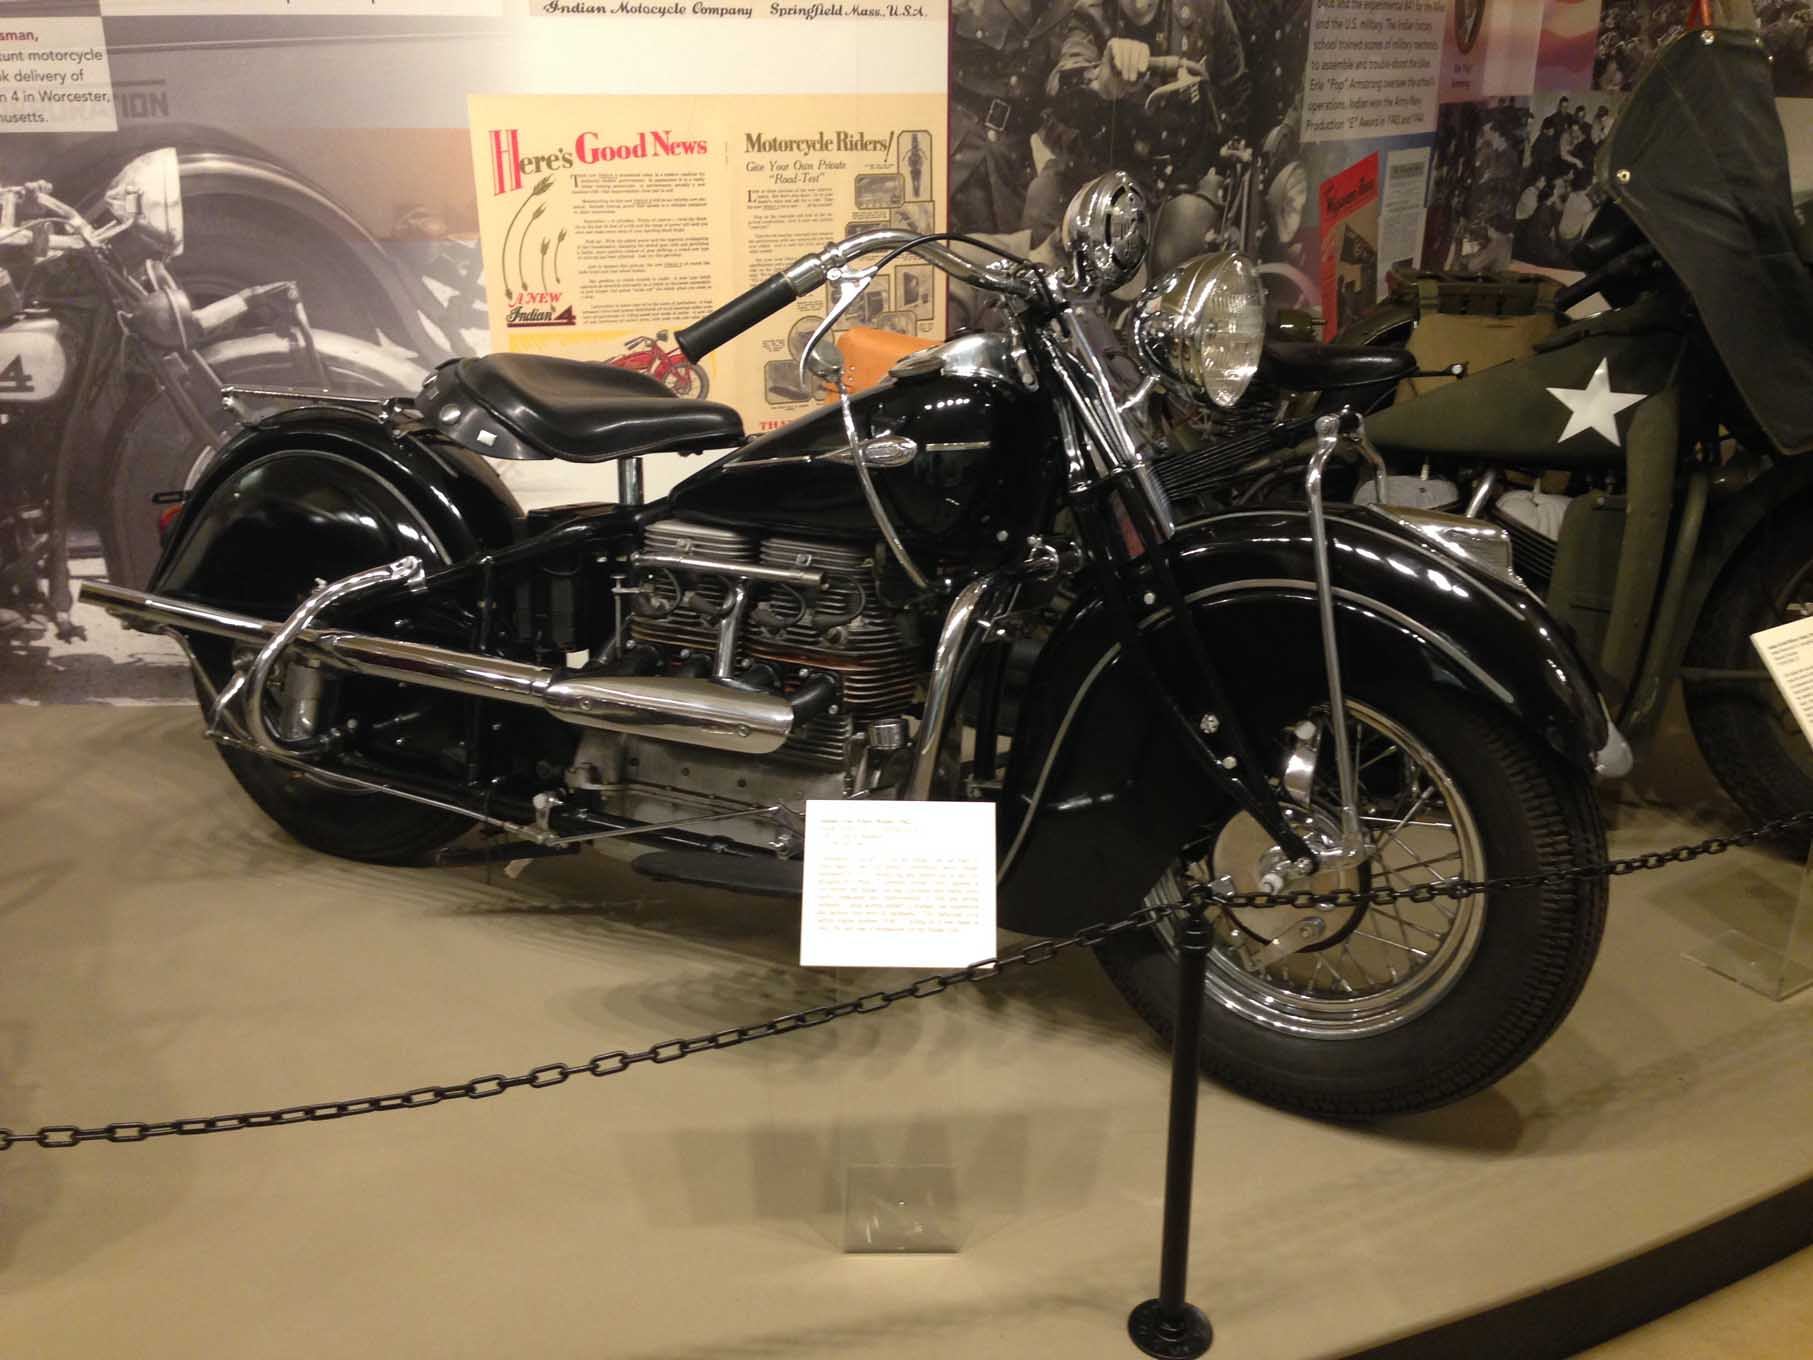 Sunday we visited a number of museums in Springfield, MA. Springfield was an industrial hub in the early years of our nation's history. It was the home of the Indian motorcycle and for a number of years Rolls-Royce vehicles were produced in Springfield.